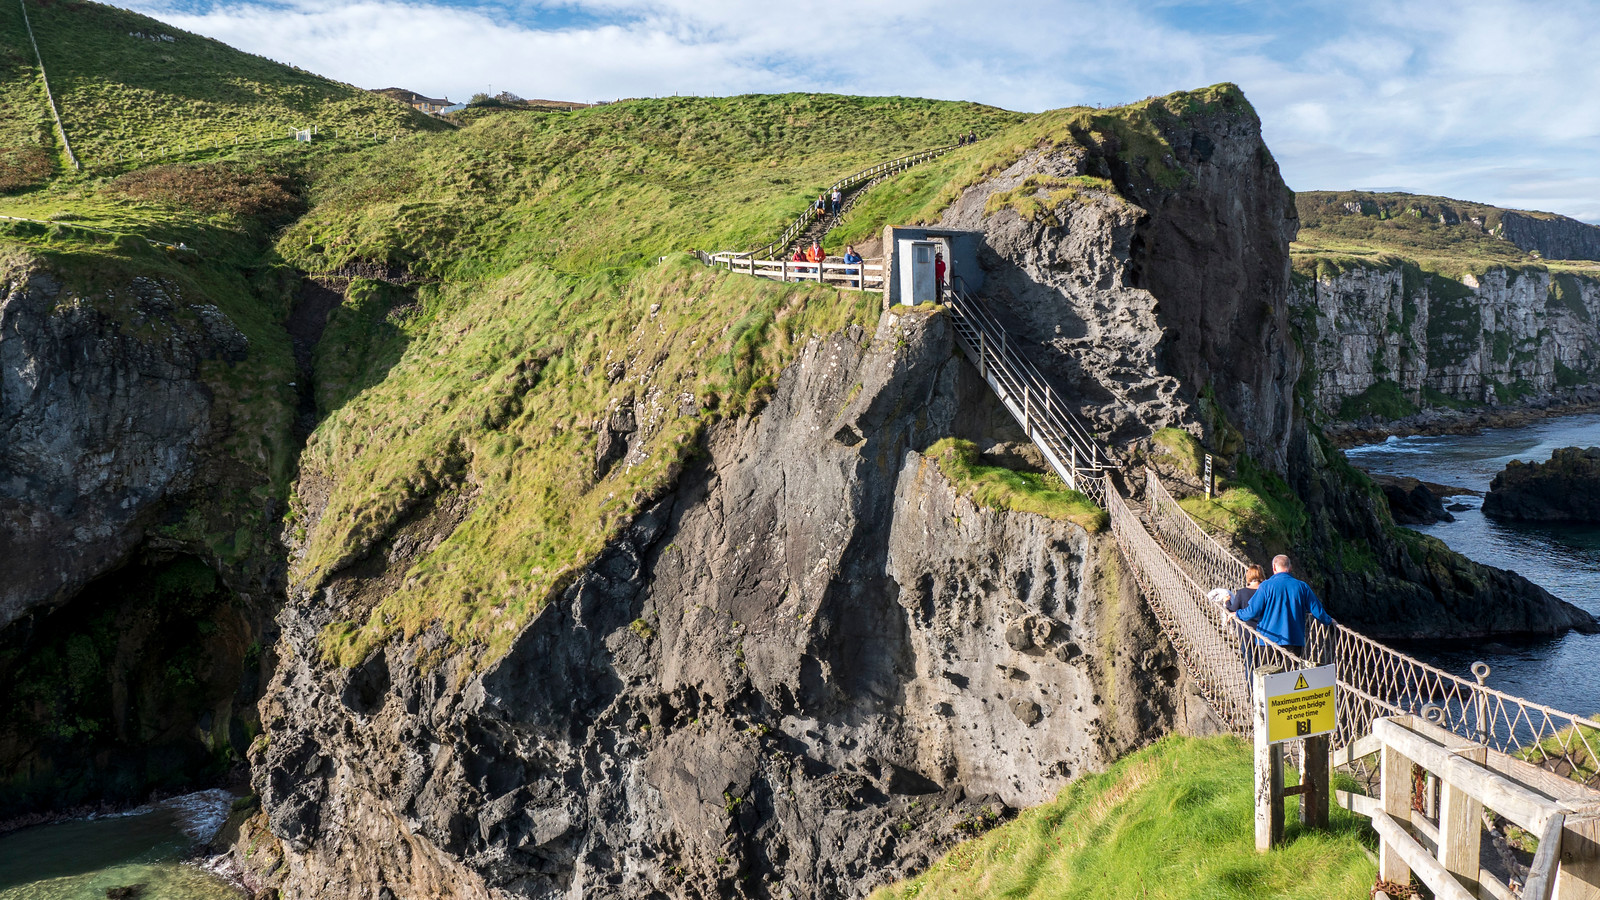 Where to Go in Northern Ireland: Carrick-a-Rede Rope Bridge